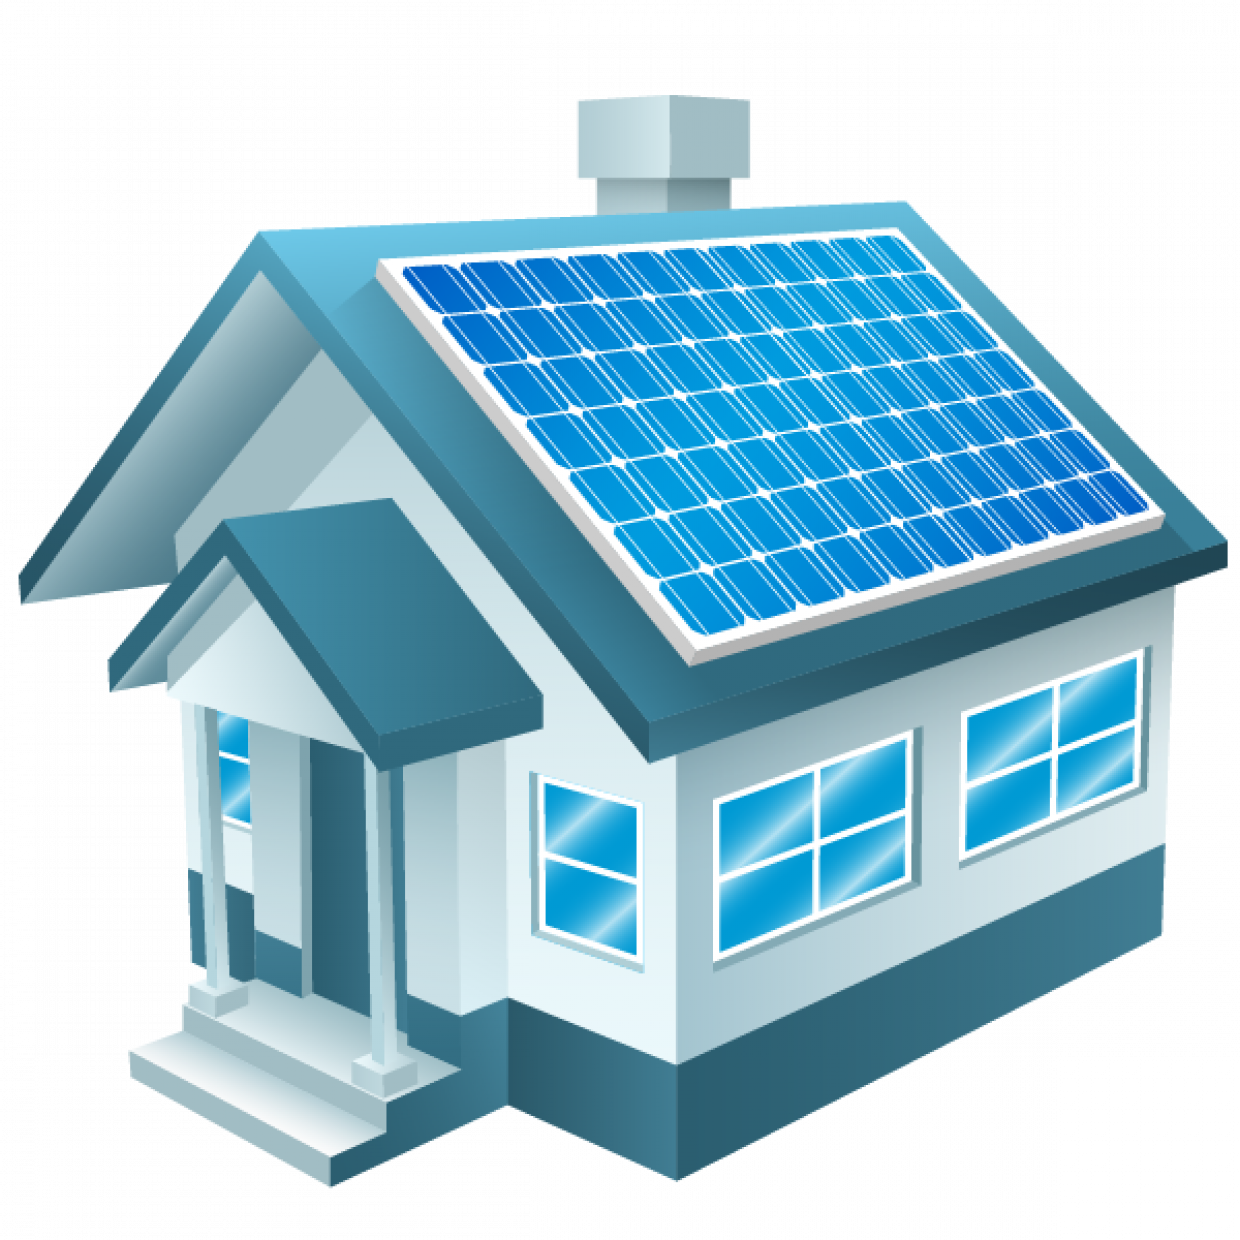 gallery/kisspng-solar-power-solar-panel-solar-energy-renewable-ene-green-energy-solar-house-5a82cdaf331076.6039590815185217752092